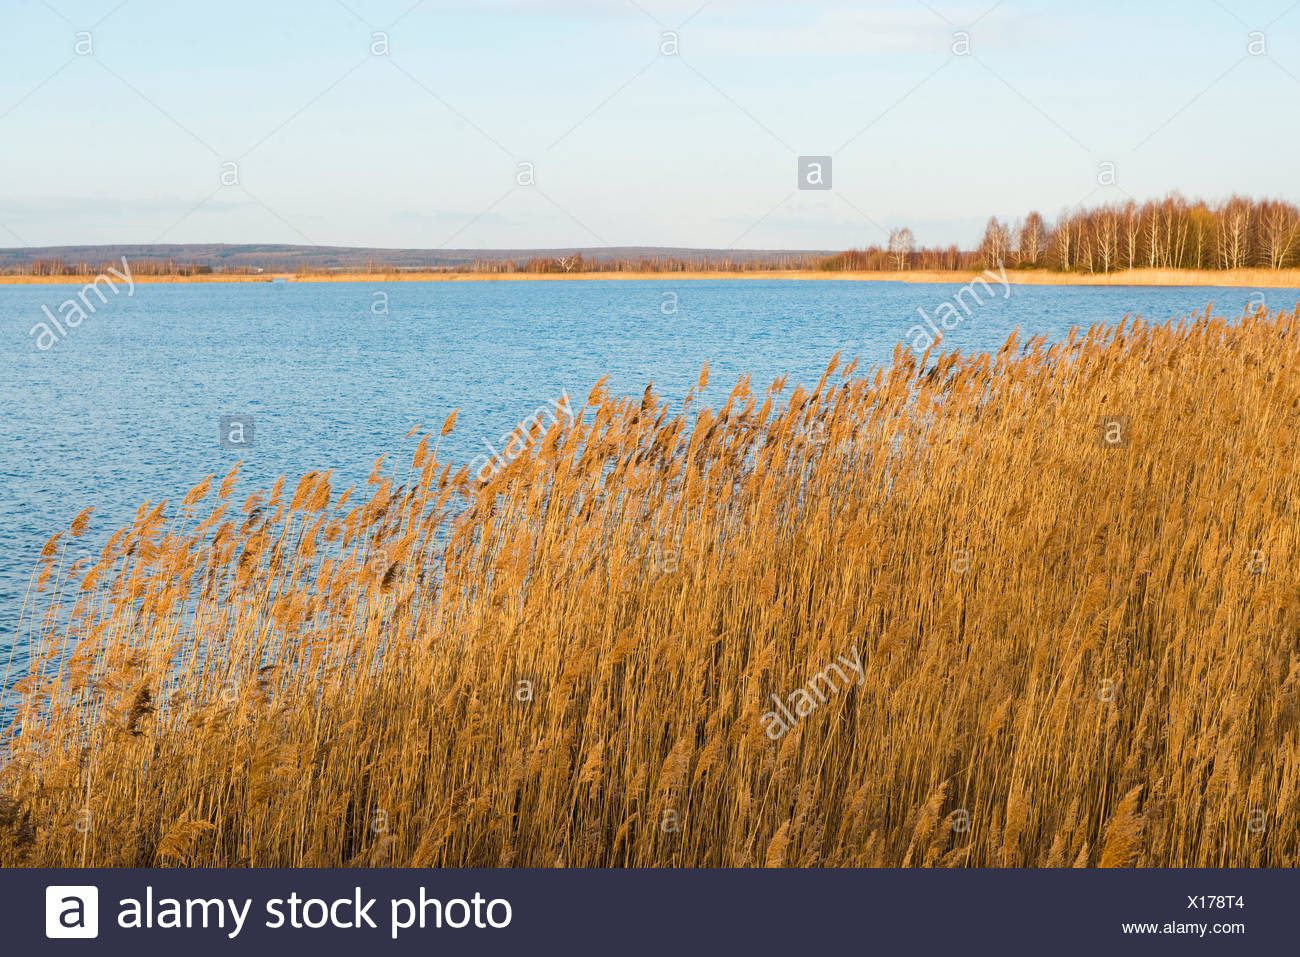 Common Reed (Phragmites australis, Phragmites communis) and an expanse of water, Heerter See Nature Reserve, Lower Saxony - Stock Image